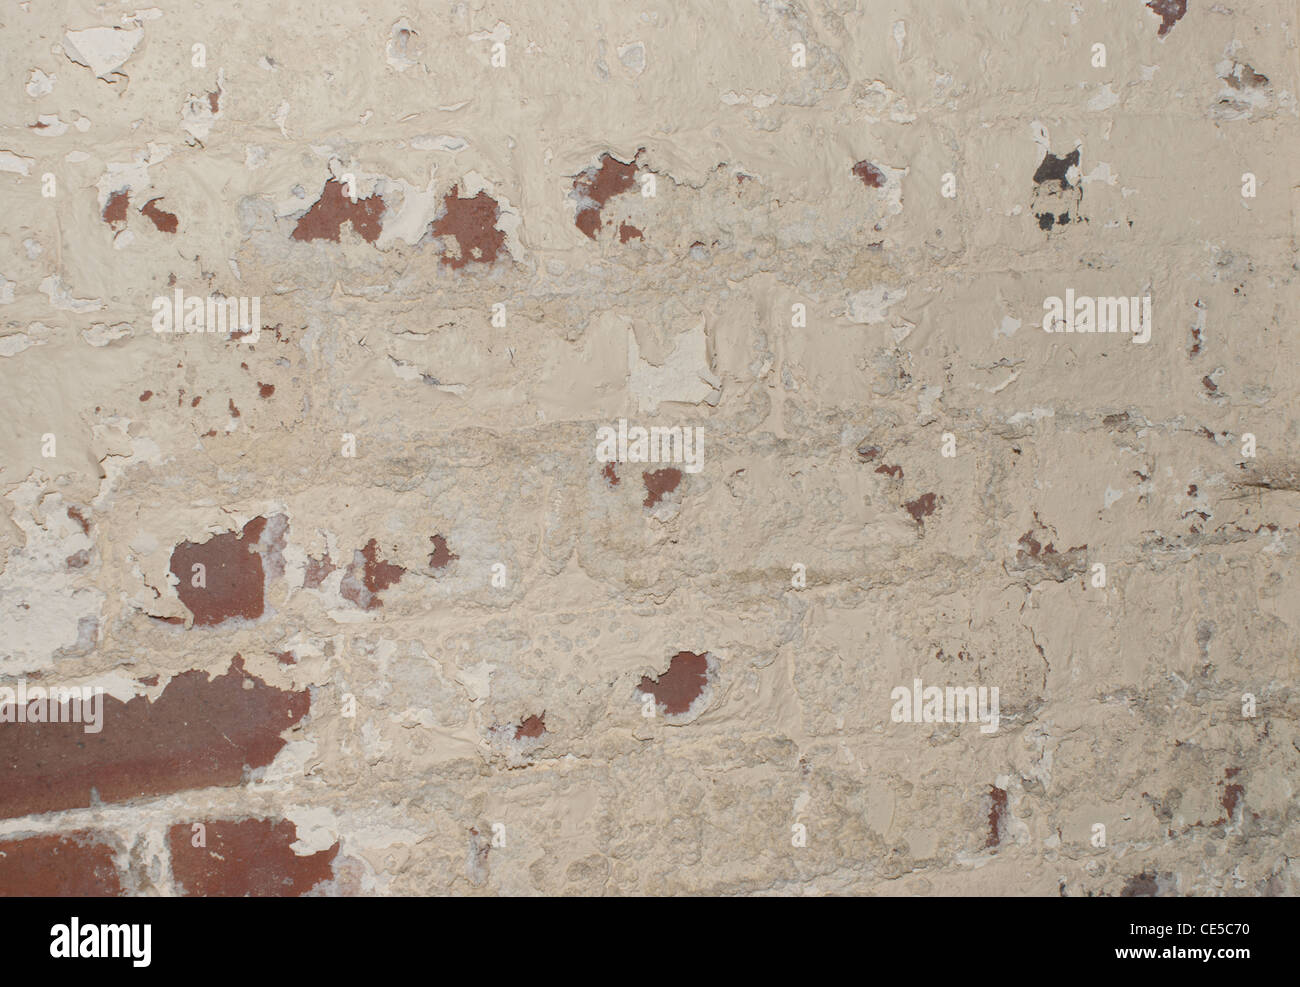 Damp wall paint flacking off - Stock Image